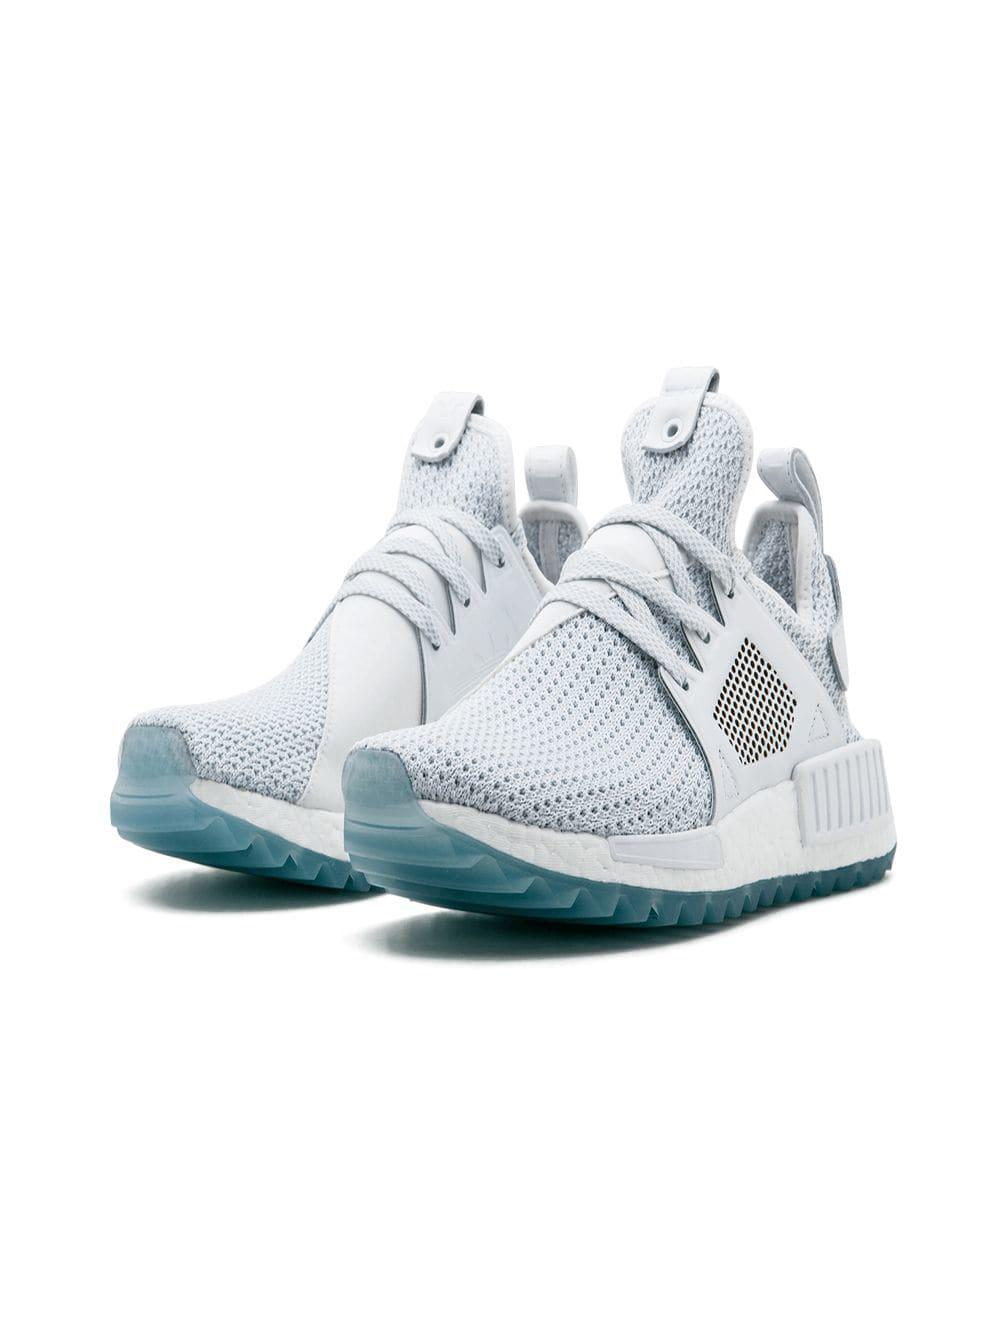 0bf73aa8e5db2 adidas Nmd xr1 Tr Titolo Sneakers in White for Men - Lyst